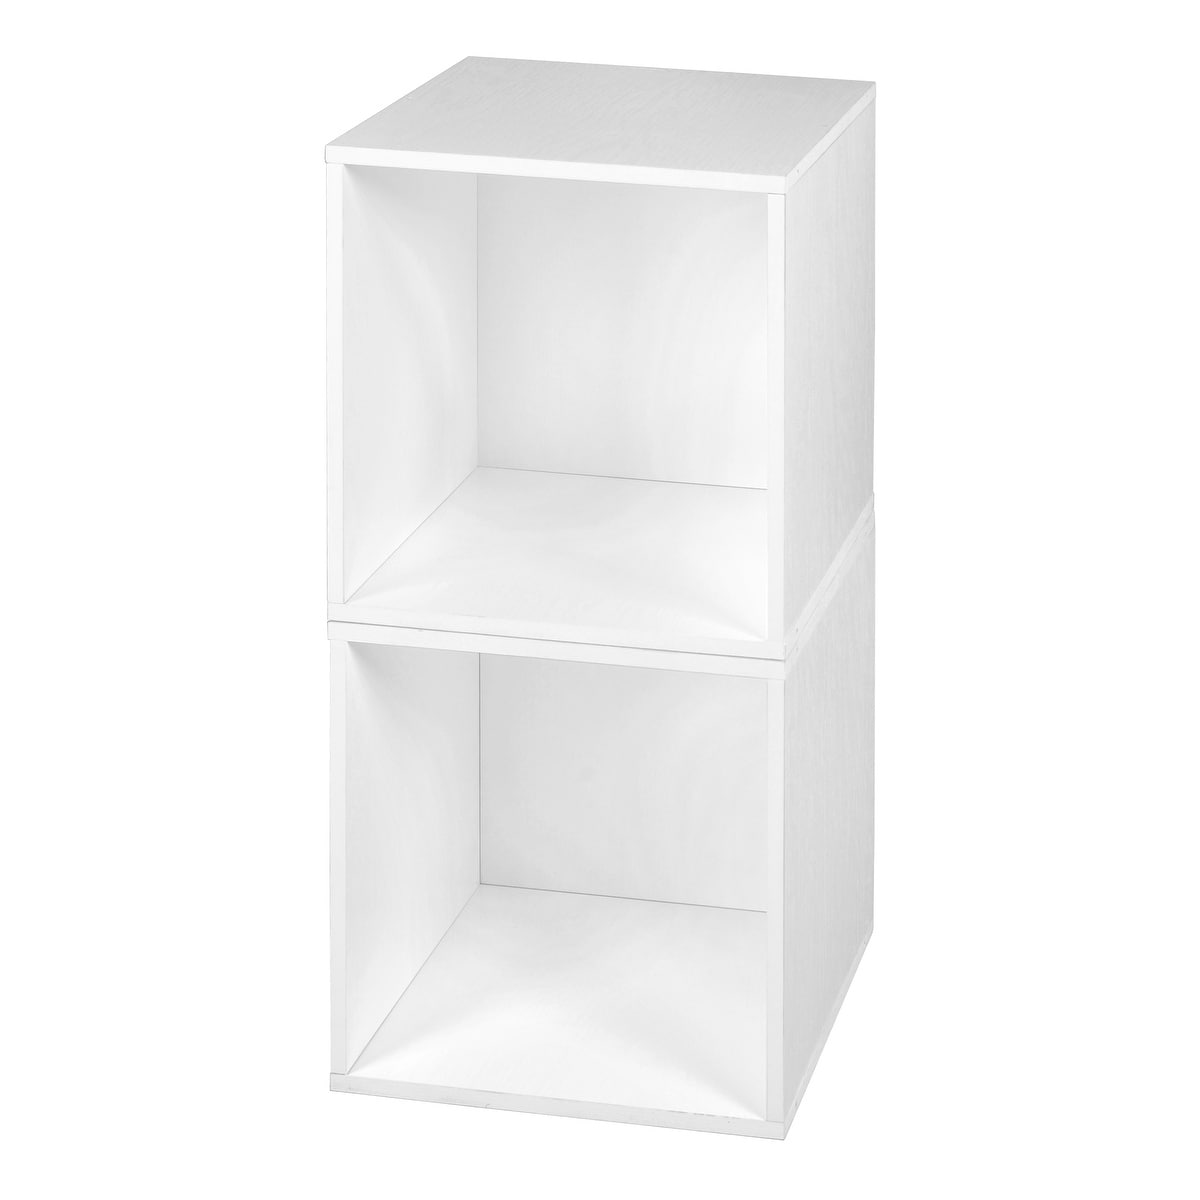 Niche Cubo Stackable Storage Cubes- White (2 pack- white)